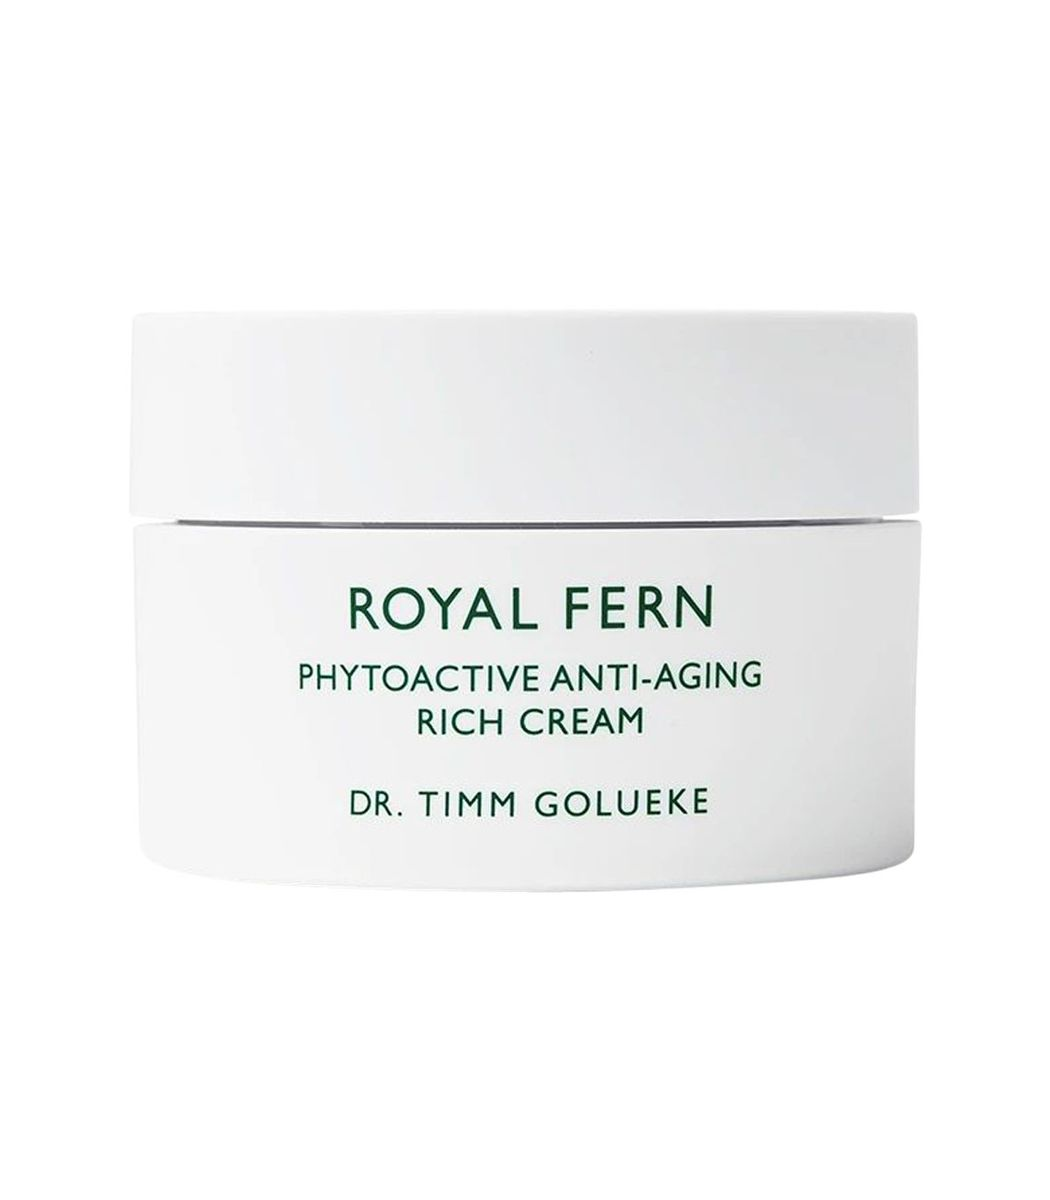 Royal Fern Phytoactive Rich Cream In White